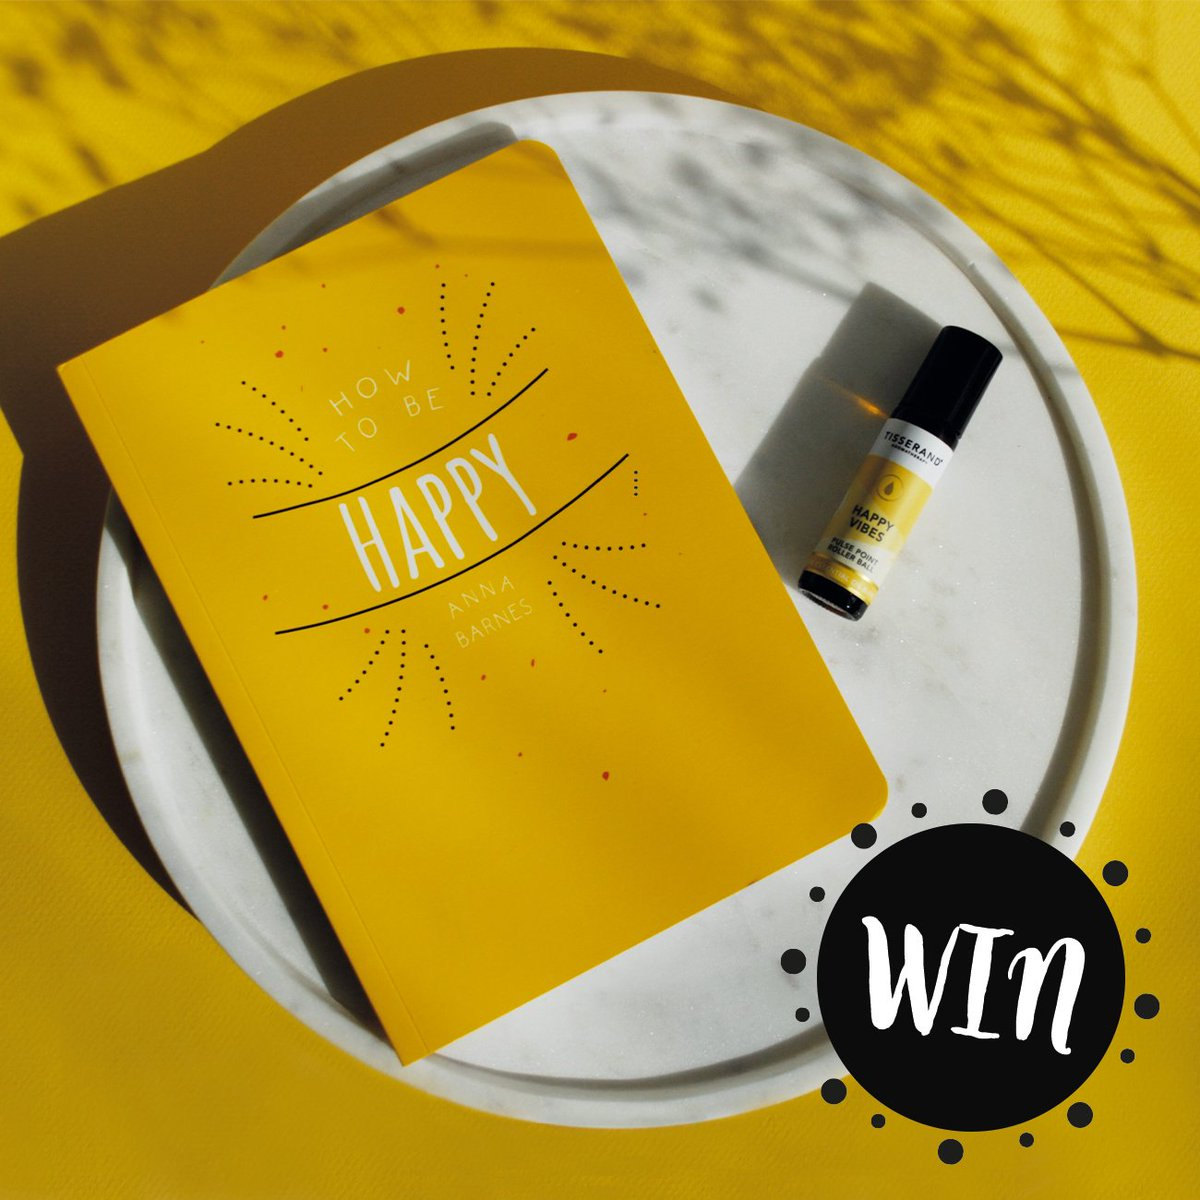 ✨ #CompetitionTime ✨  This #internationaldayofhappiness we want to help turn up the joy by giving you the chance to #win 1 of 3 little bundles of sunshine ☀️  ➡️ Simply RT and make sure you're following us & @Summersdale to enter. UK only. Ends 9am 22.3.19 ⬅️